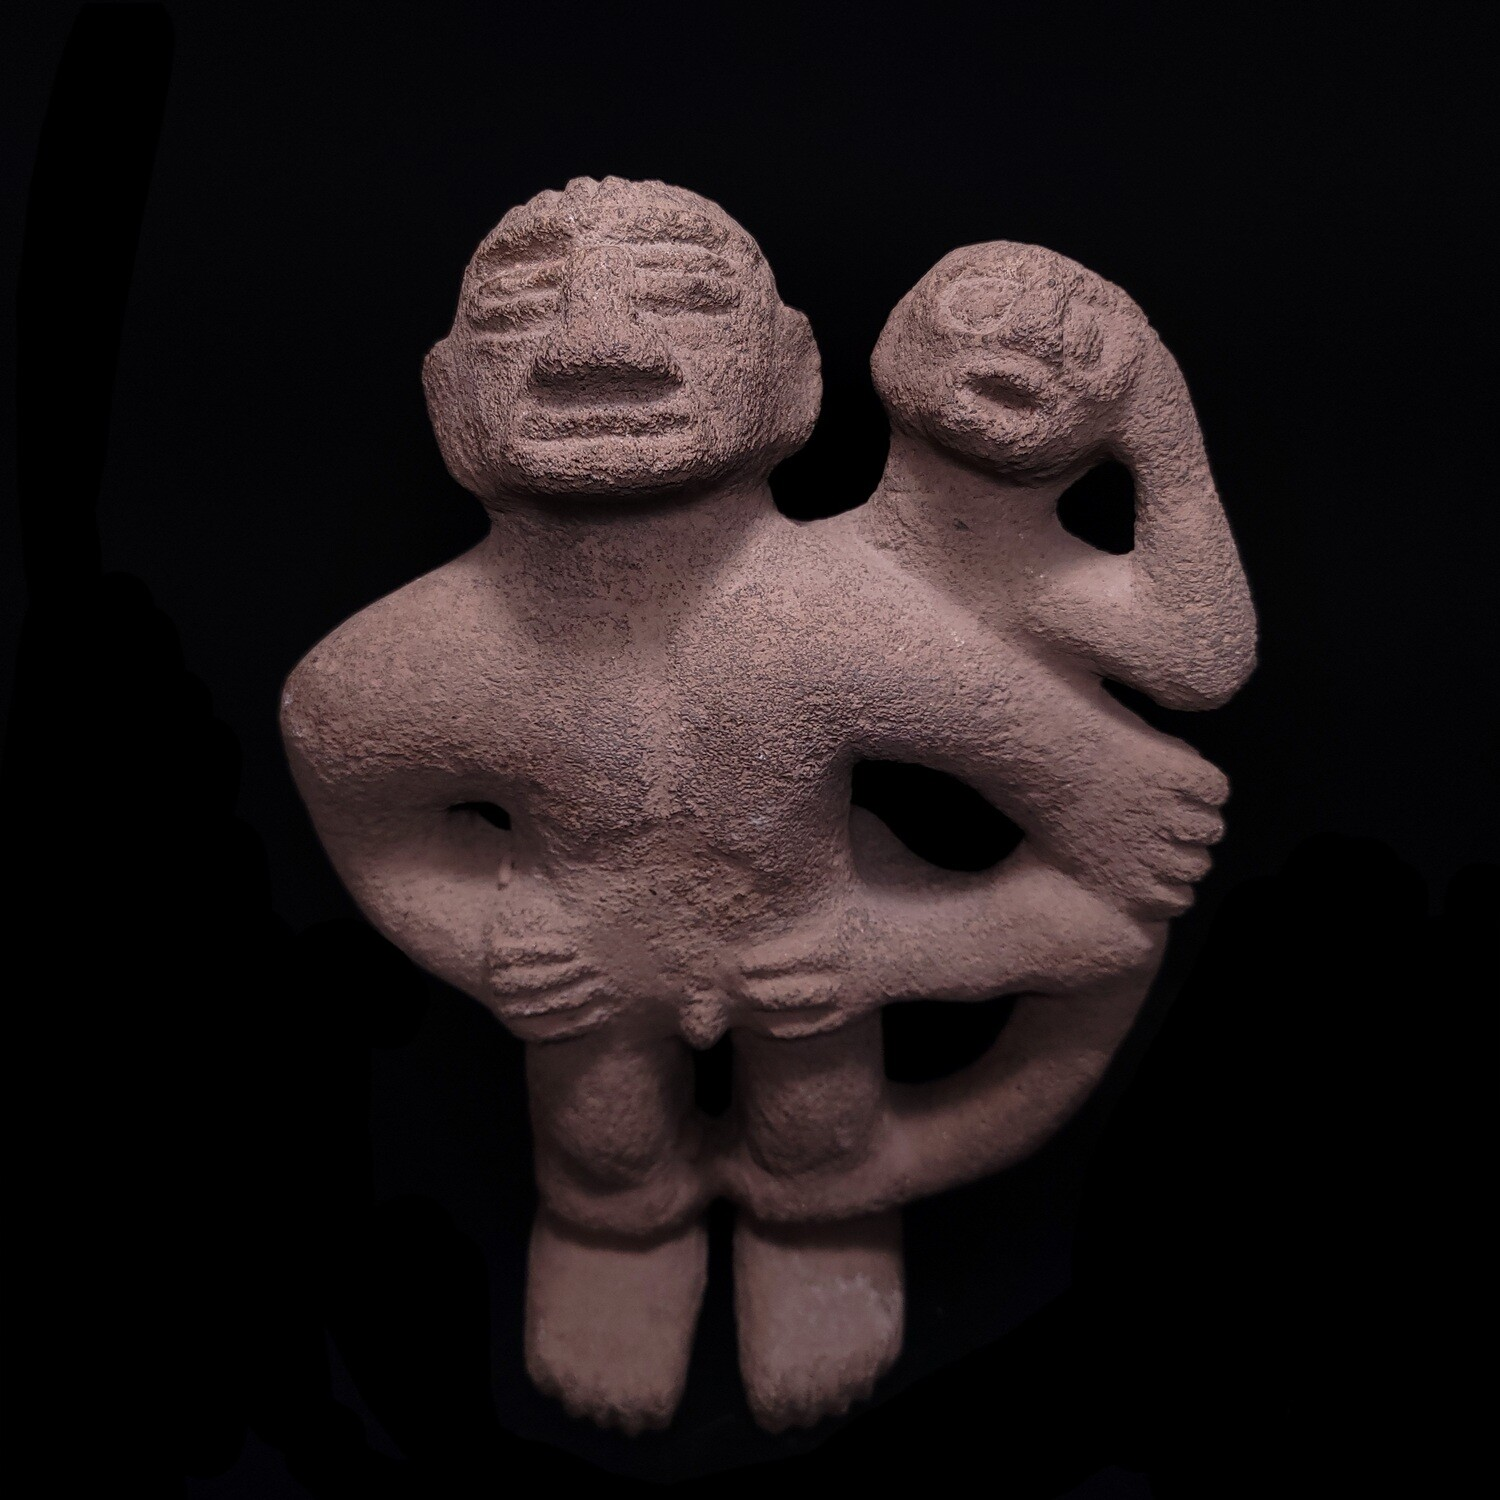 Costa Rican Stone figure with monkey